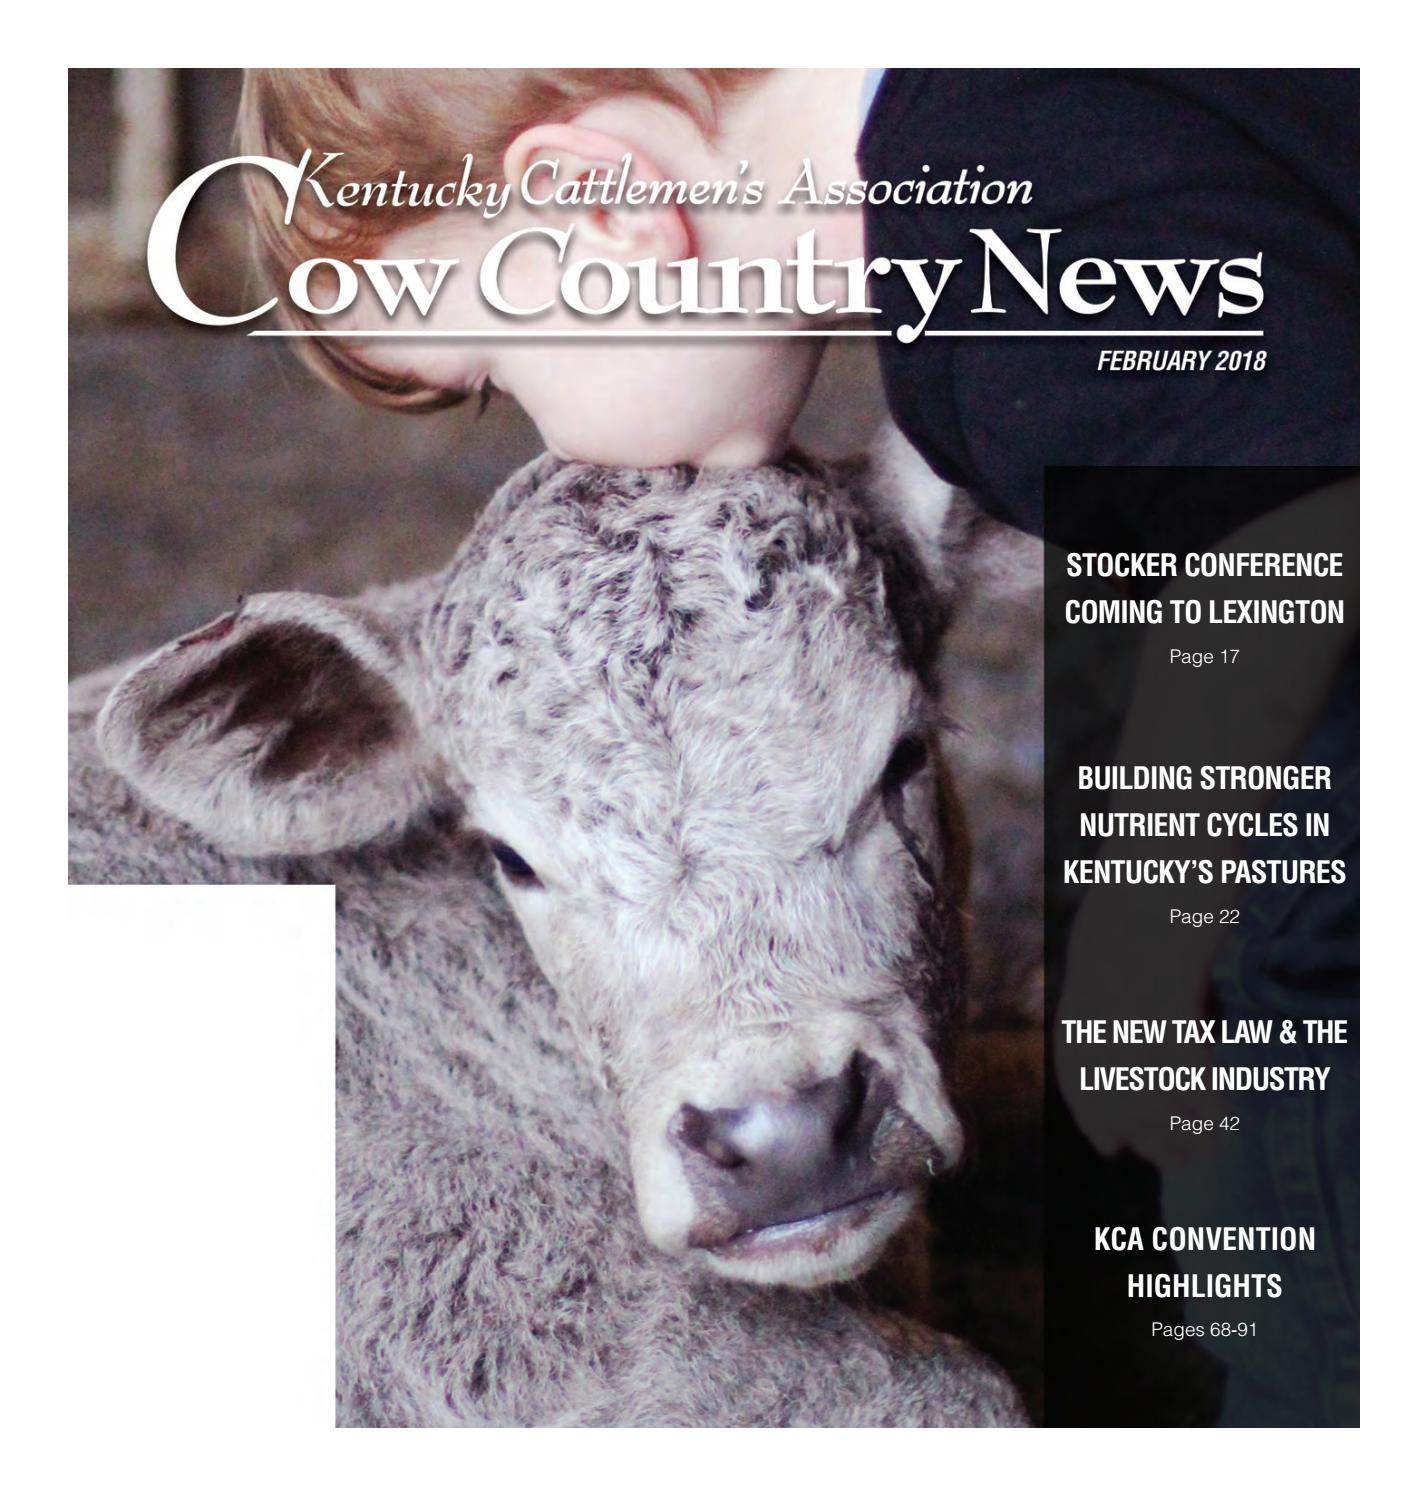 Cow Country News - February 2018 by The Kentucky Cattlemen's